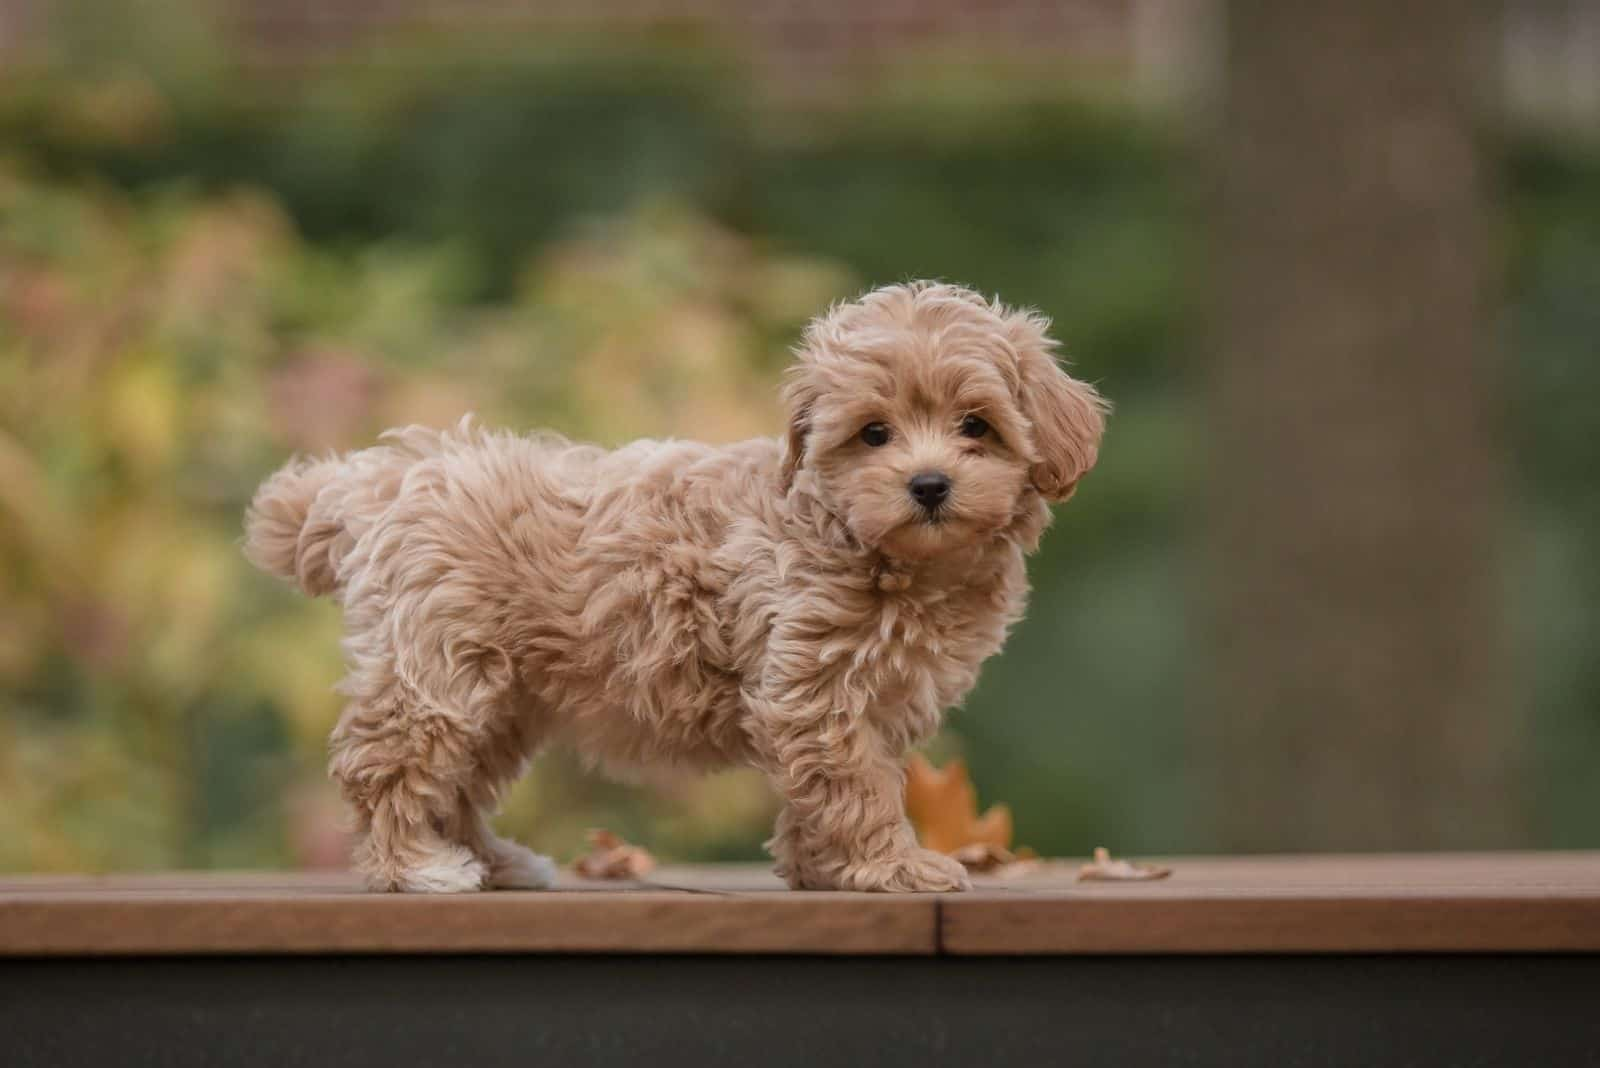 Adorable Maltese and Poodle mix puppy standing over the platform